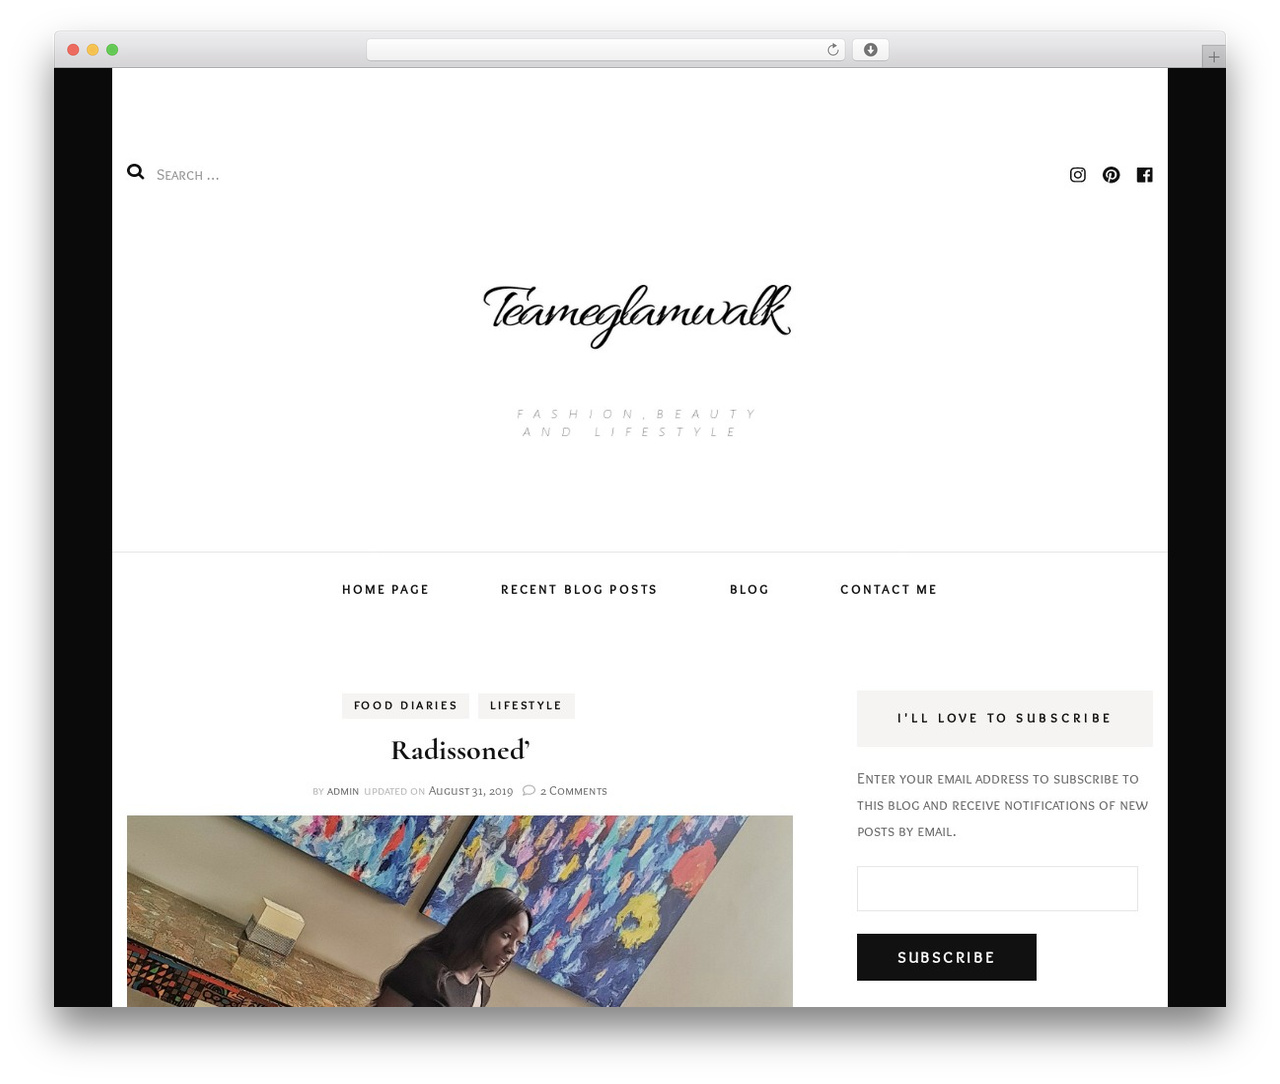 Blossom Fashion premium WordPress theme - teameglamwalk.com